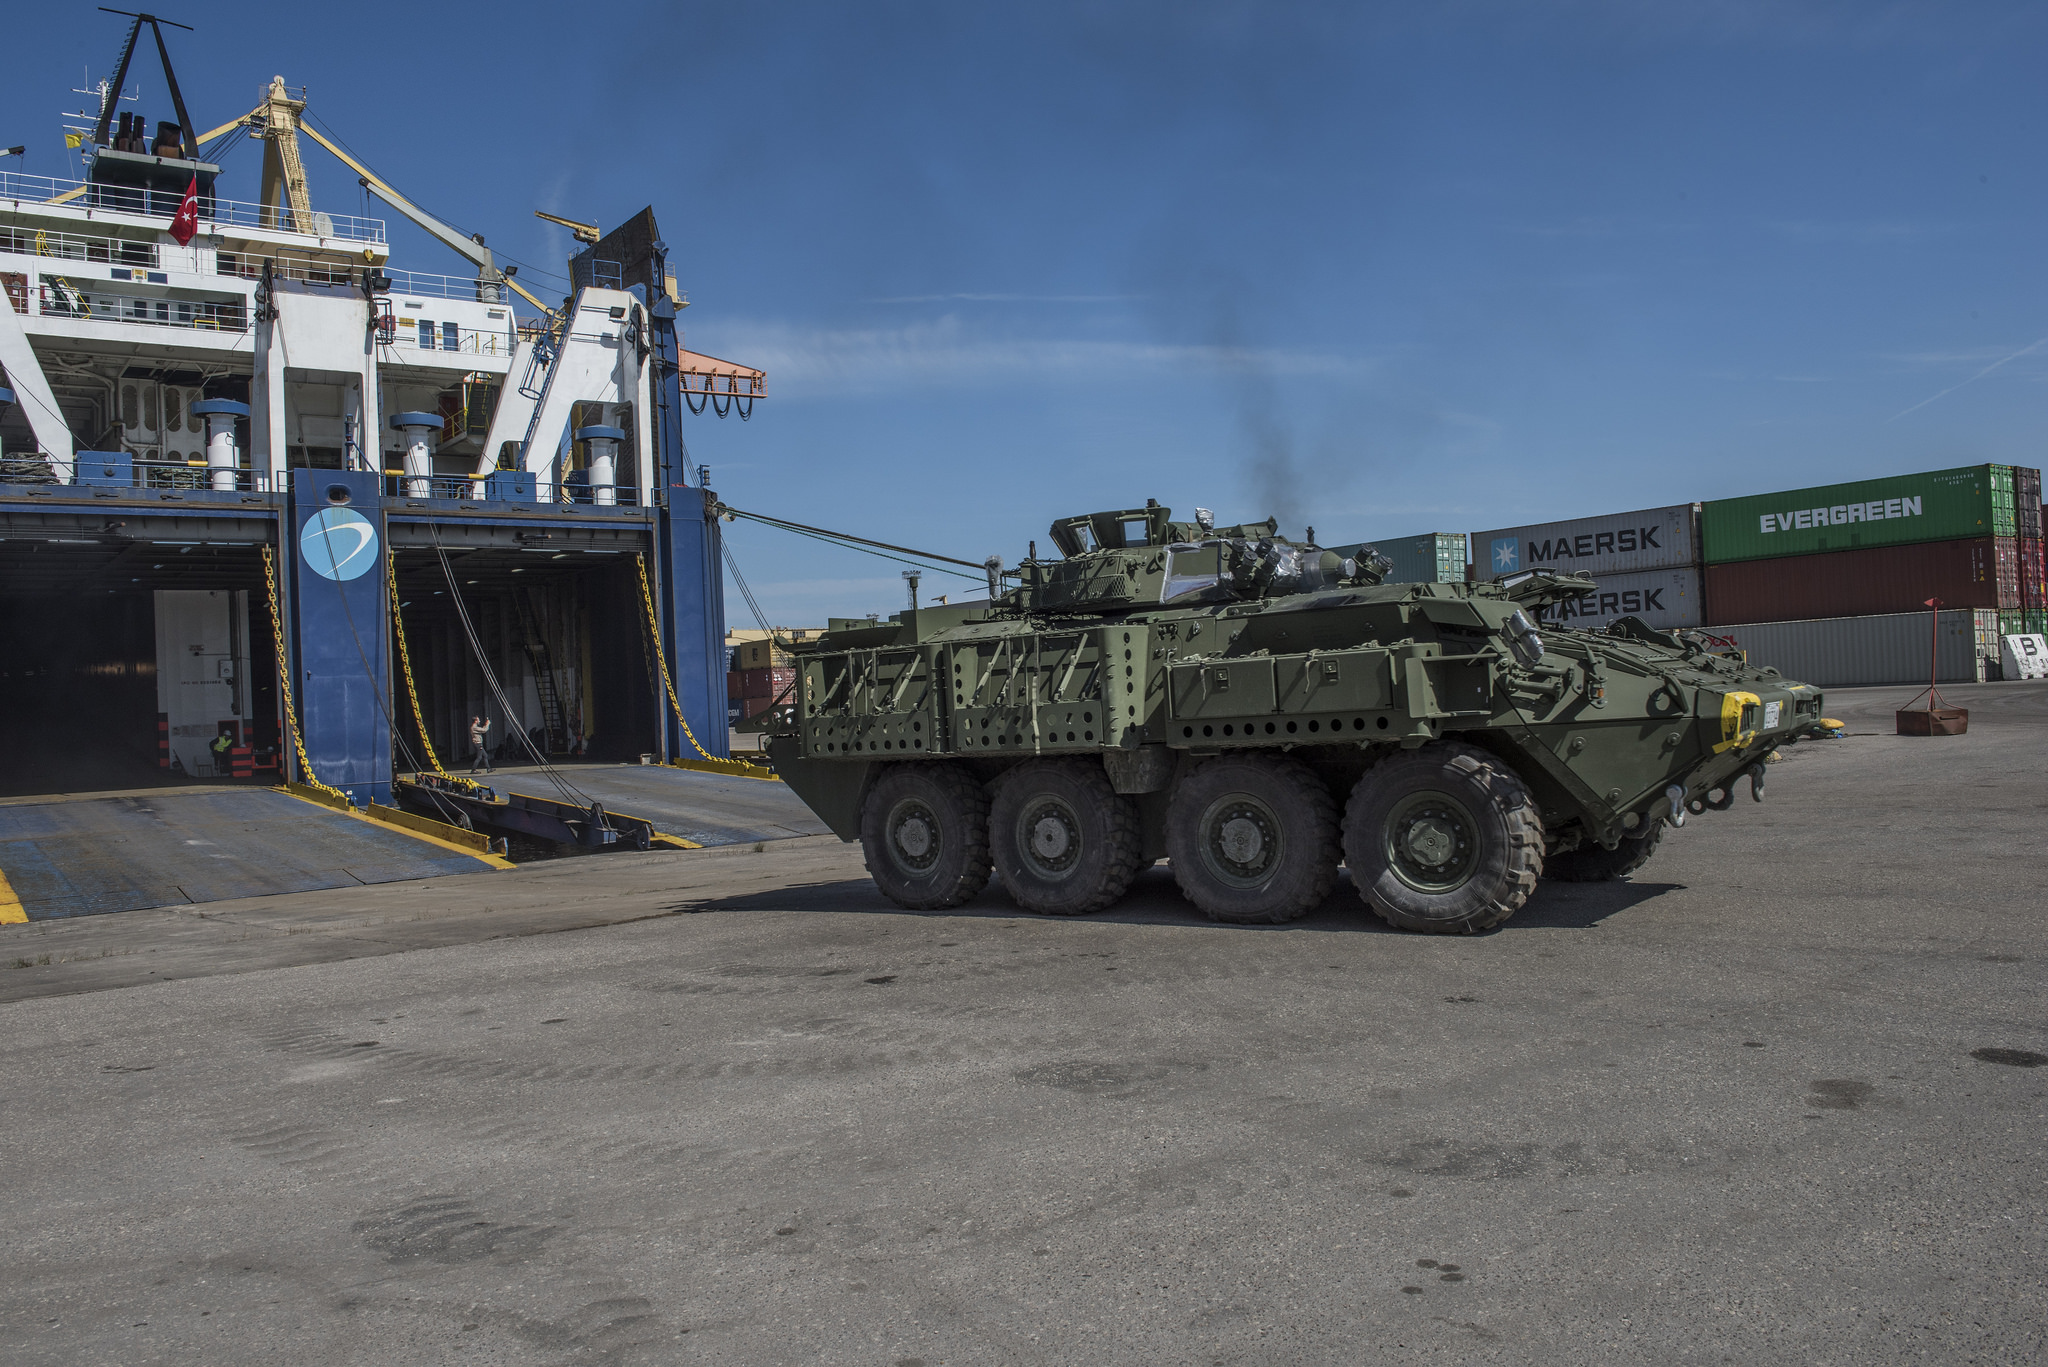 May 6 2017. Canadian military vehicles and equipment are offloaded from a cargo ship on May 6 in Riga Port, Latvia, in preparation for the arrival of the multinational battlegroup as part of NATO's enhanced Forward Presence in Latvia.   Equipment, including mobile heavy equipment, arrived in Riga Port in Latvia today to be used during the construction of camp infrastructure such as accommodation and vehicle maintenance bays at Camp Adazi where NATO's enhanced Forward Presence battlegroup in Latvia will be based.   Photo: Corporal Colin Thompson, Joint Task Force-Europe Imagery Technician